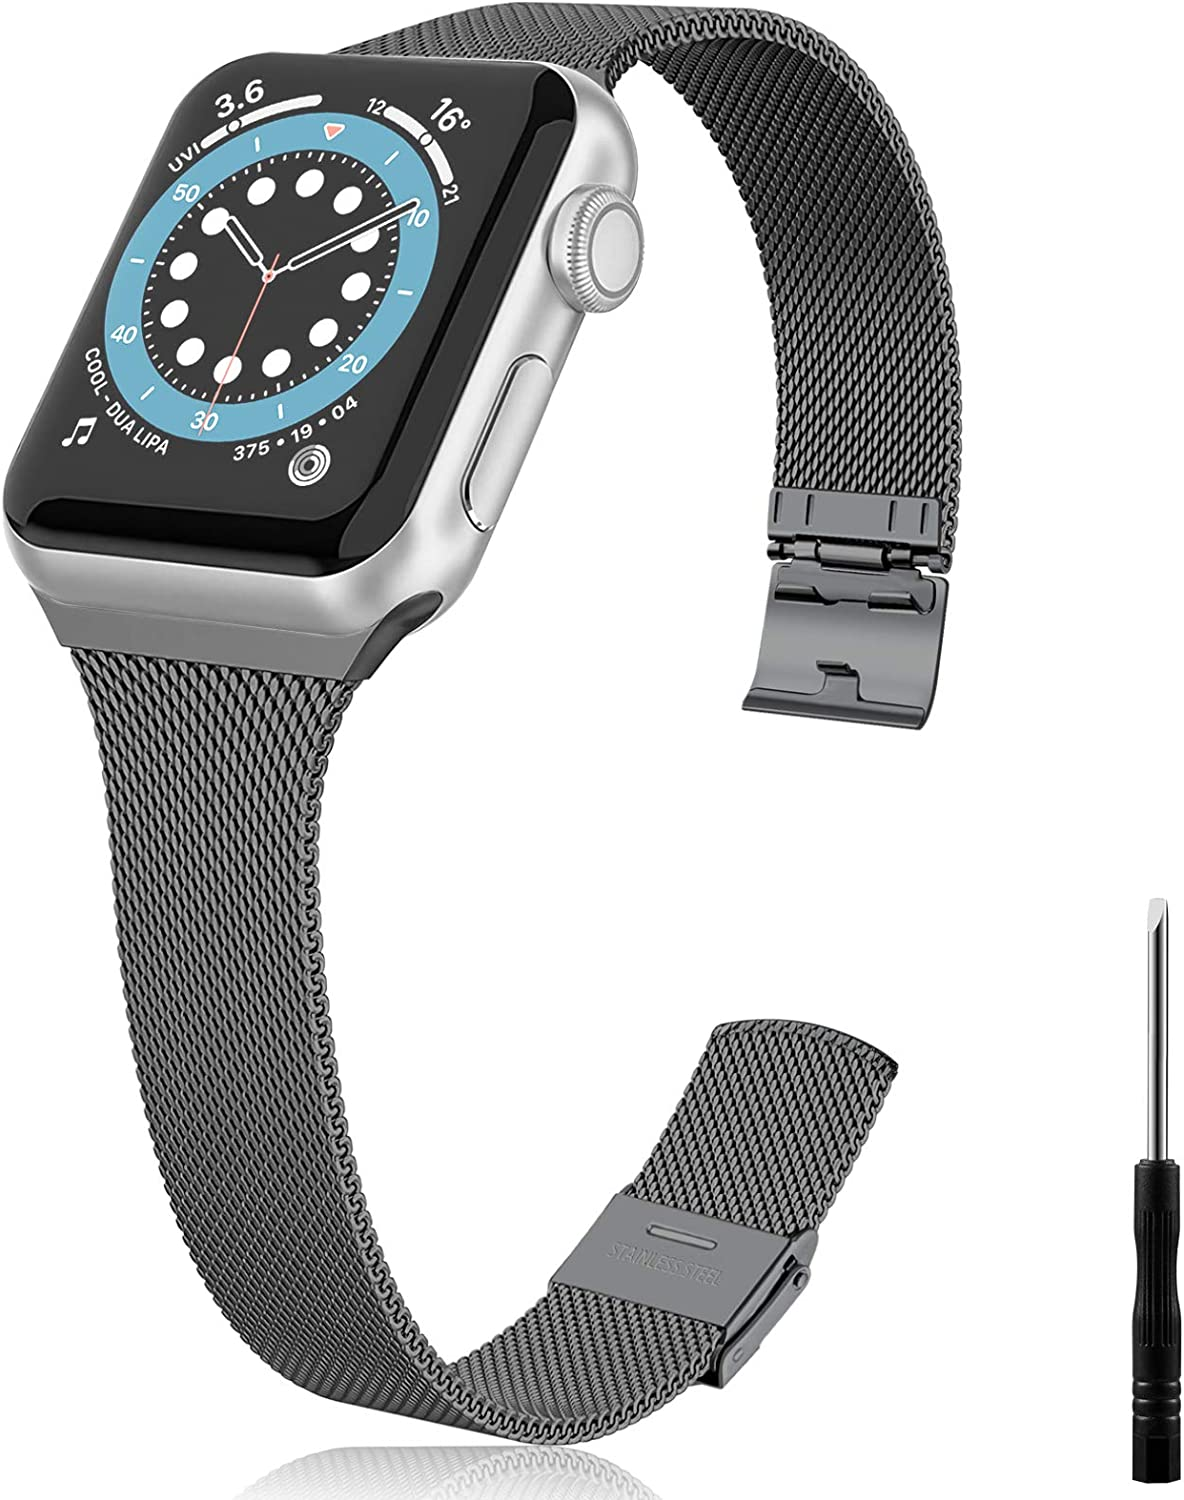 Vcegari Slim Band Compatible with Apple Watch 44mm, Stainless Steel Metal Mesh Replacement Wristband Ajustable Narrow Strap for iWatch 42mm SE & Series 6 5 4 3 2 1 Women Men, Space Gray